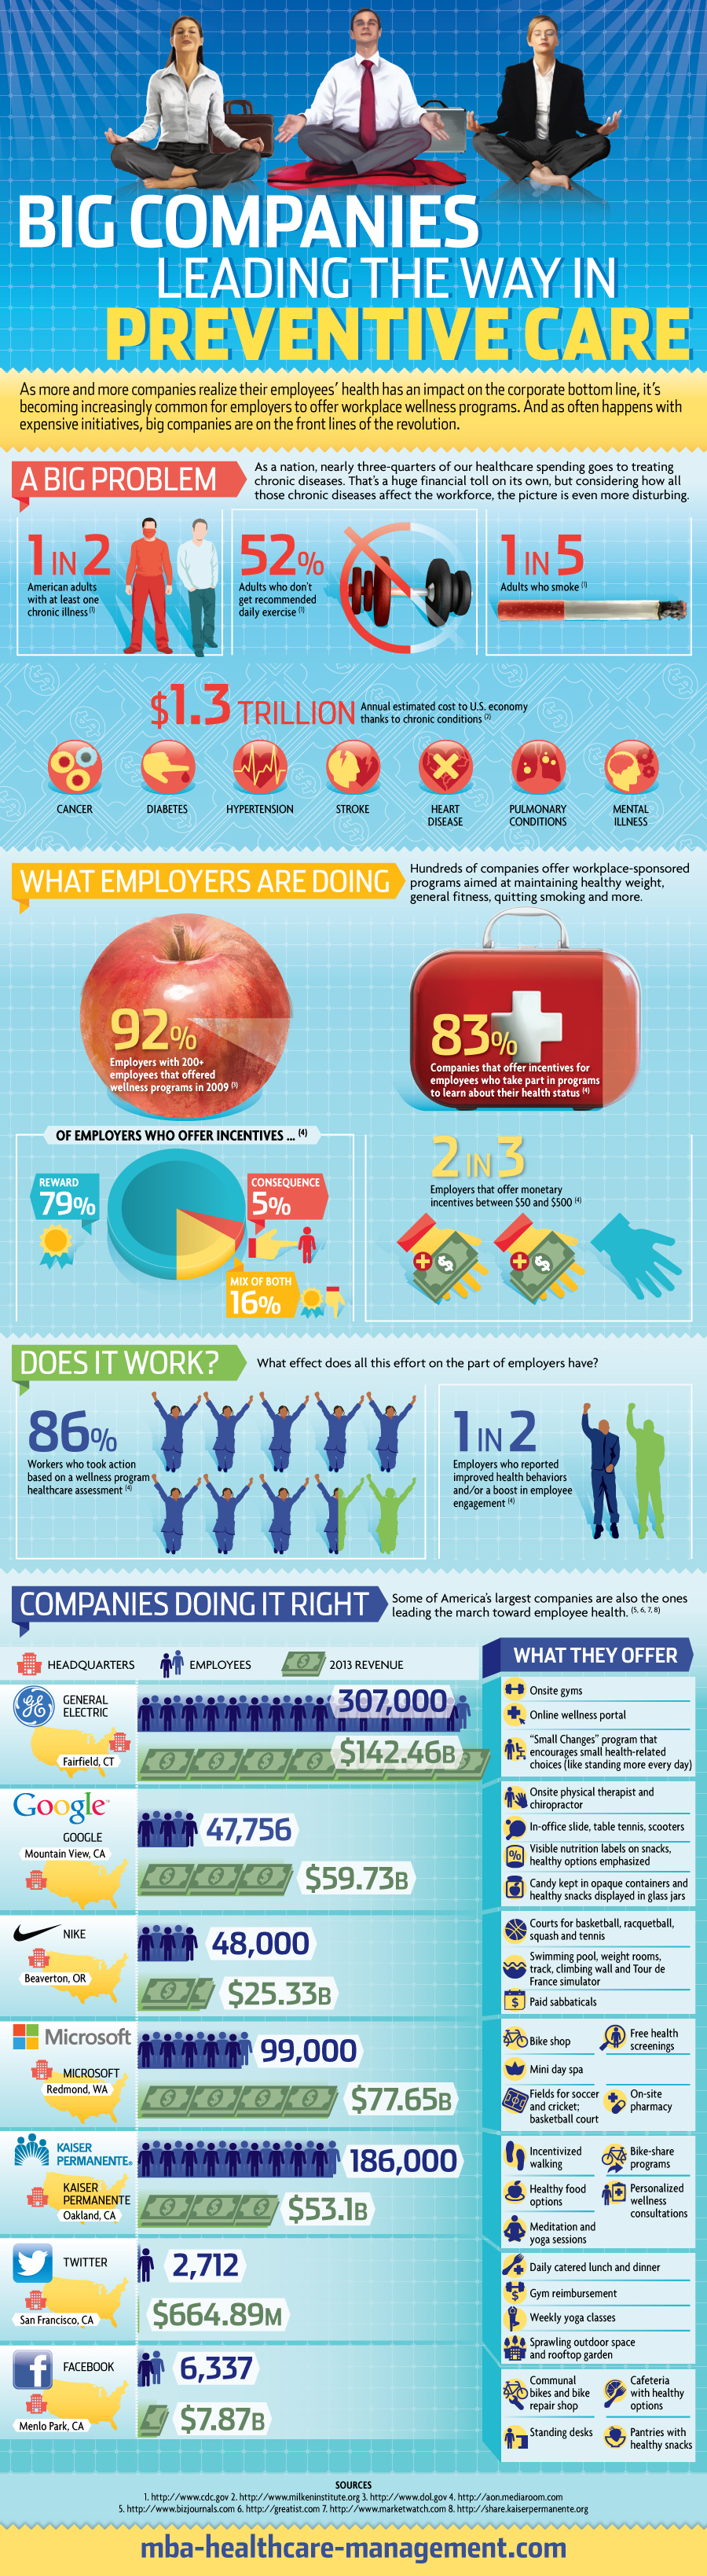 Big Companies Leading the Way in Preventive Care